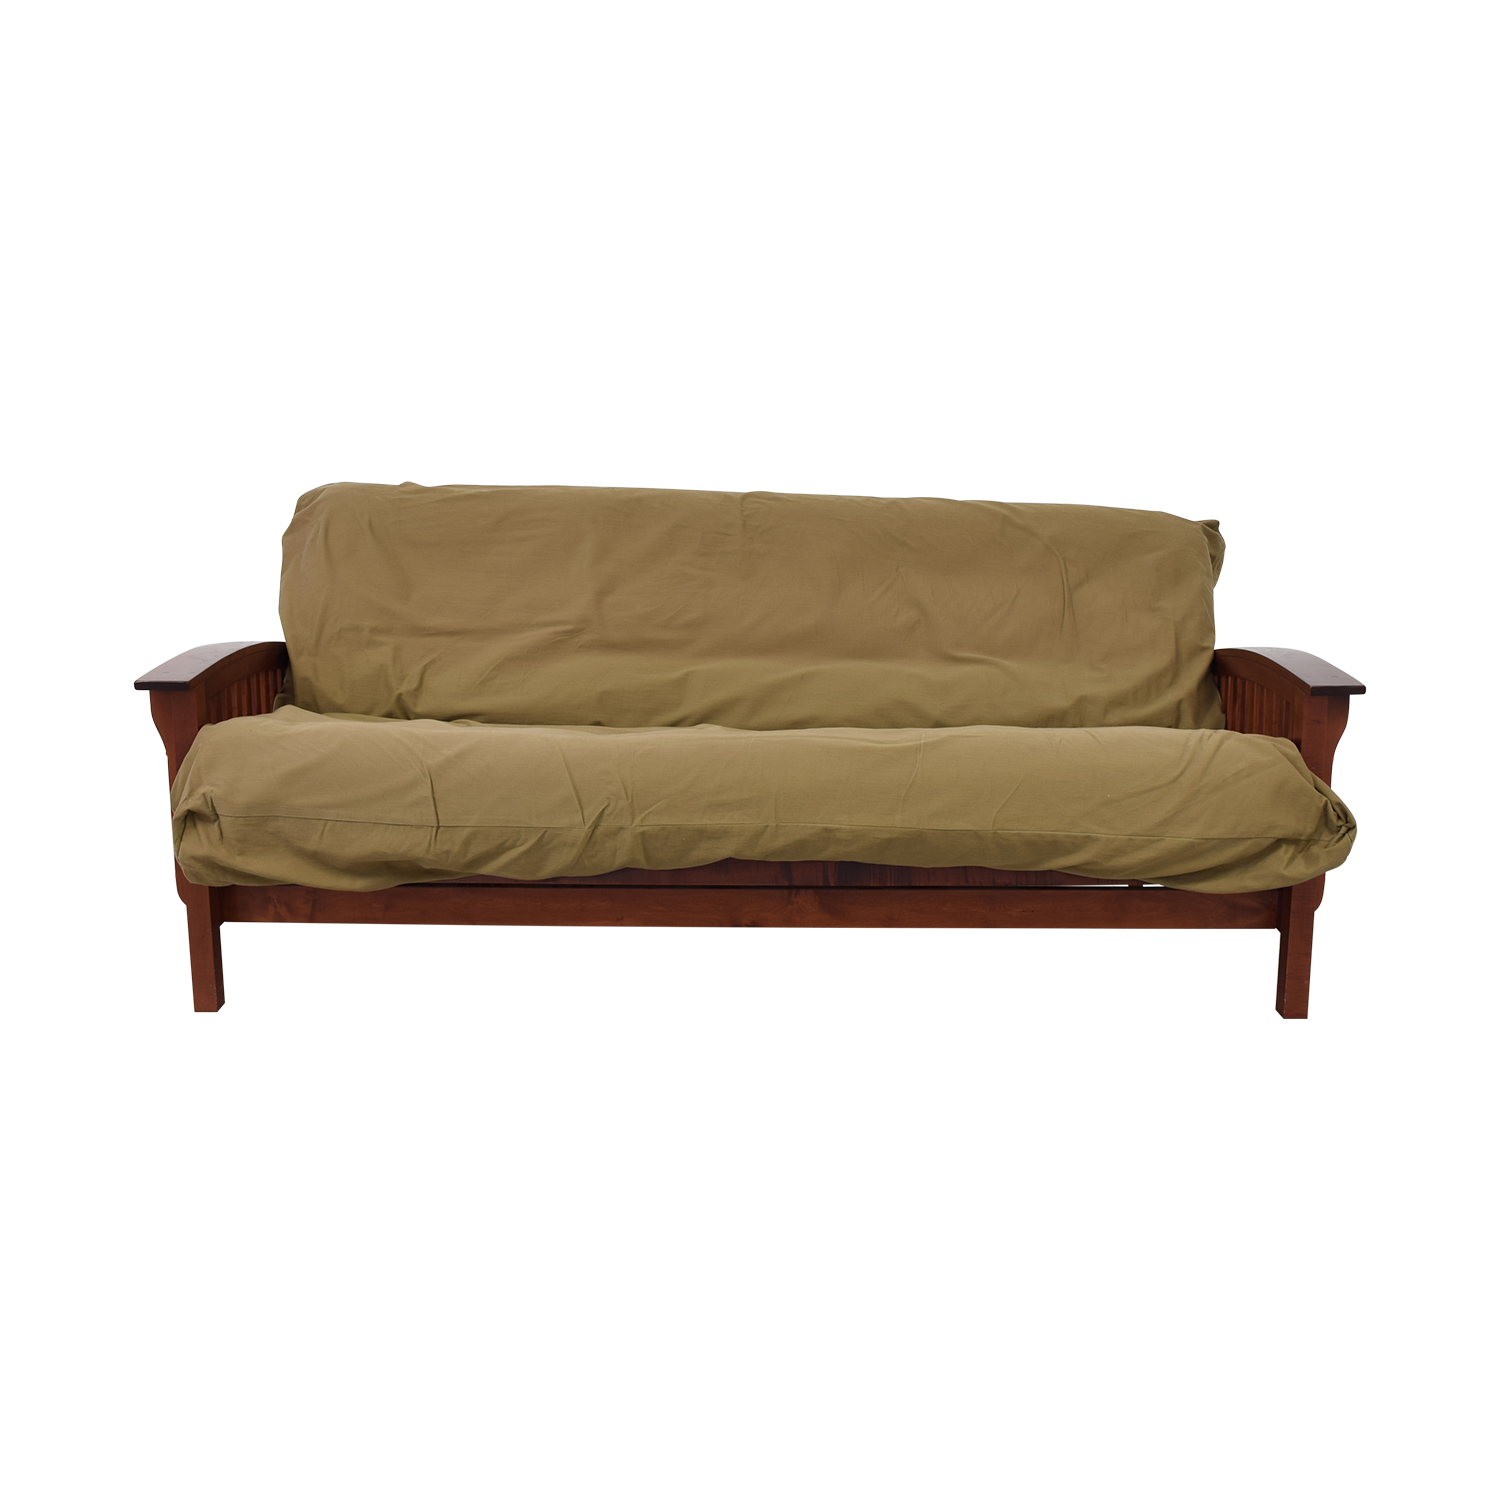 Wood Frame Futon coupon